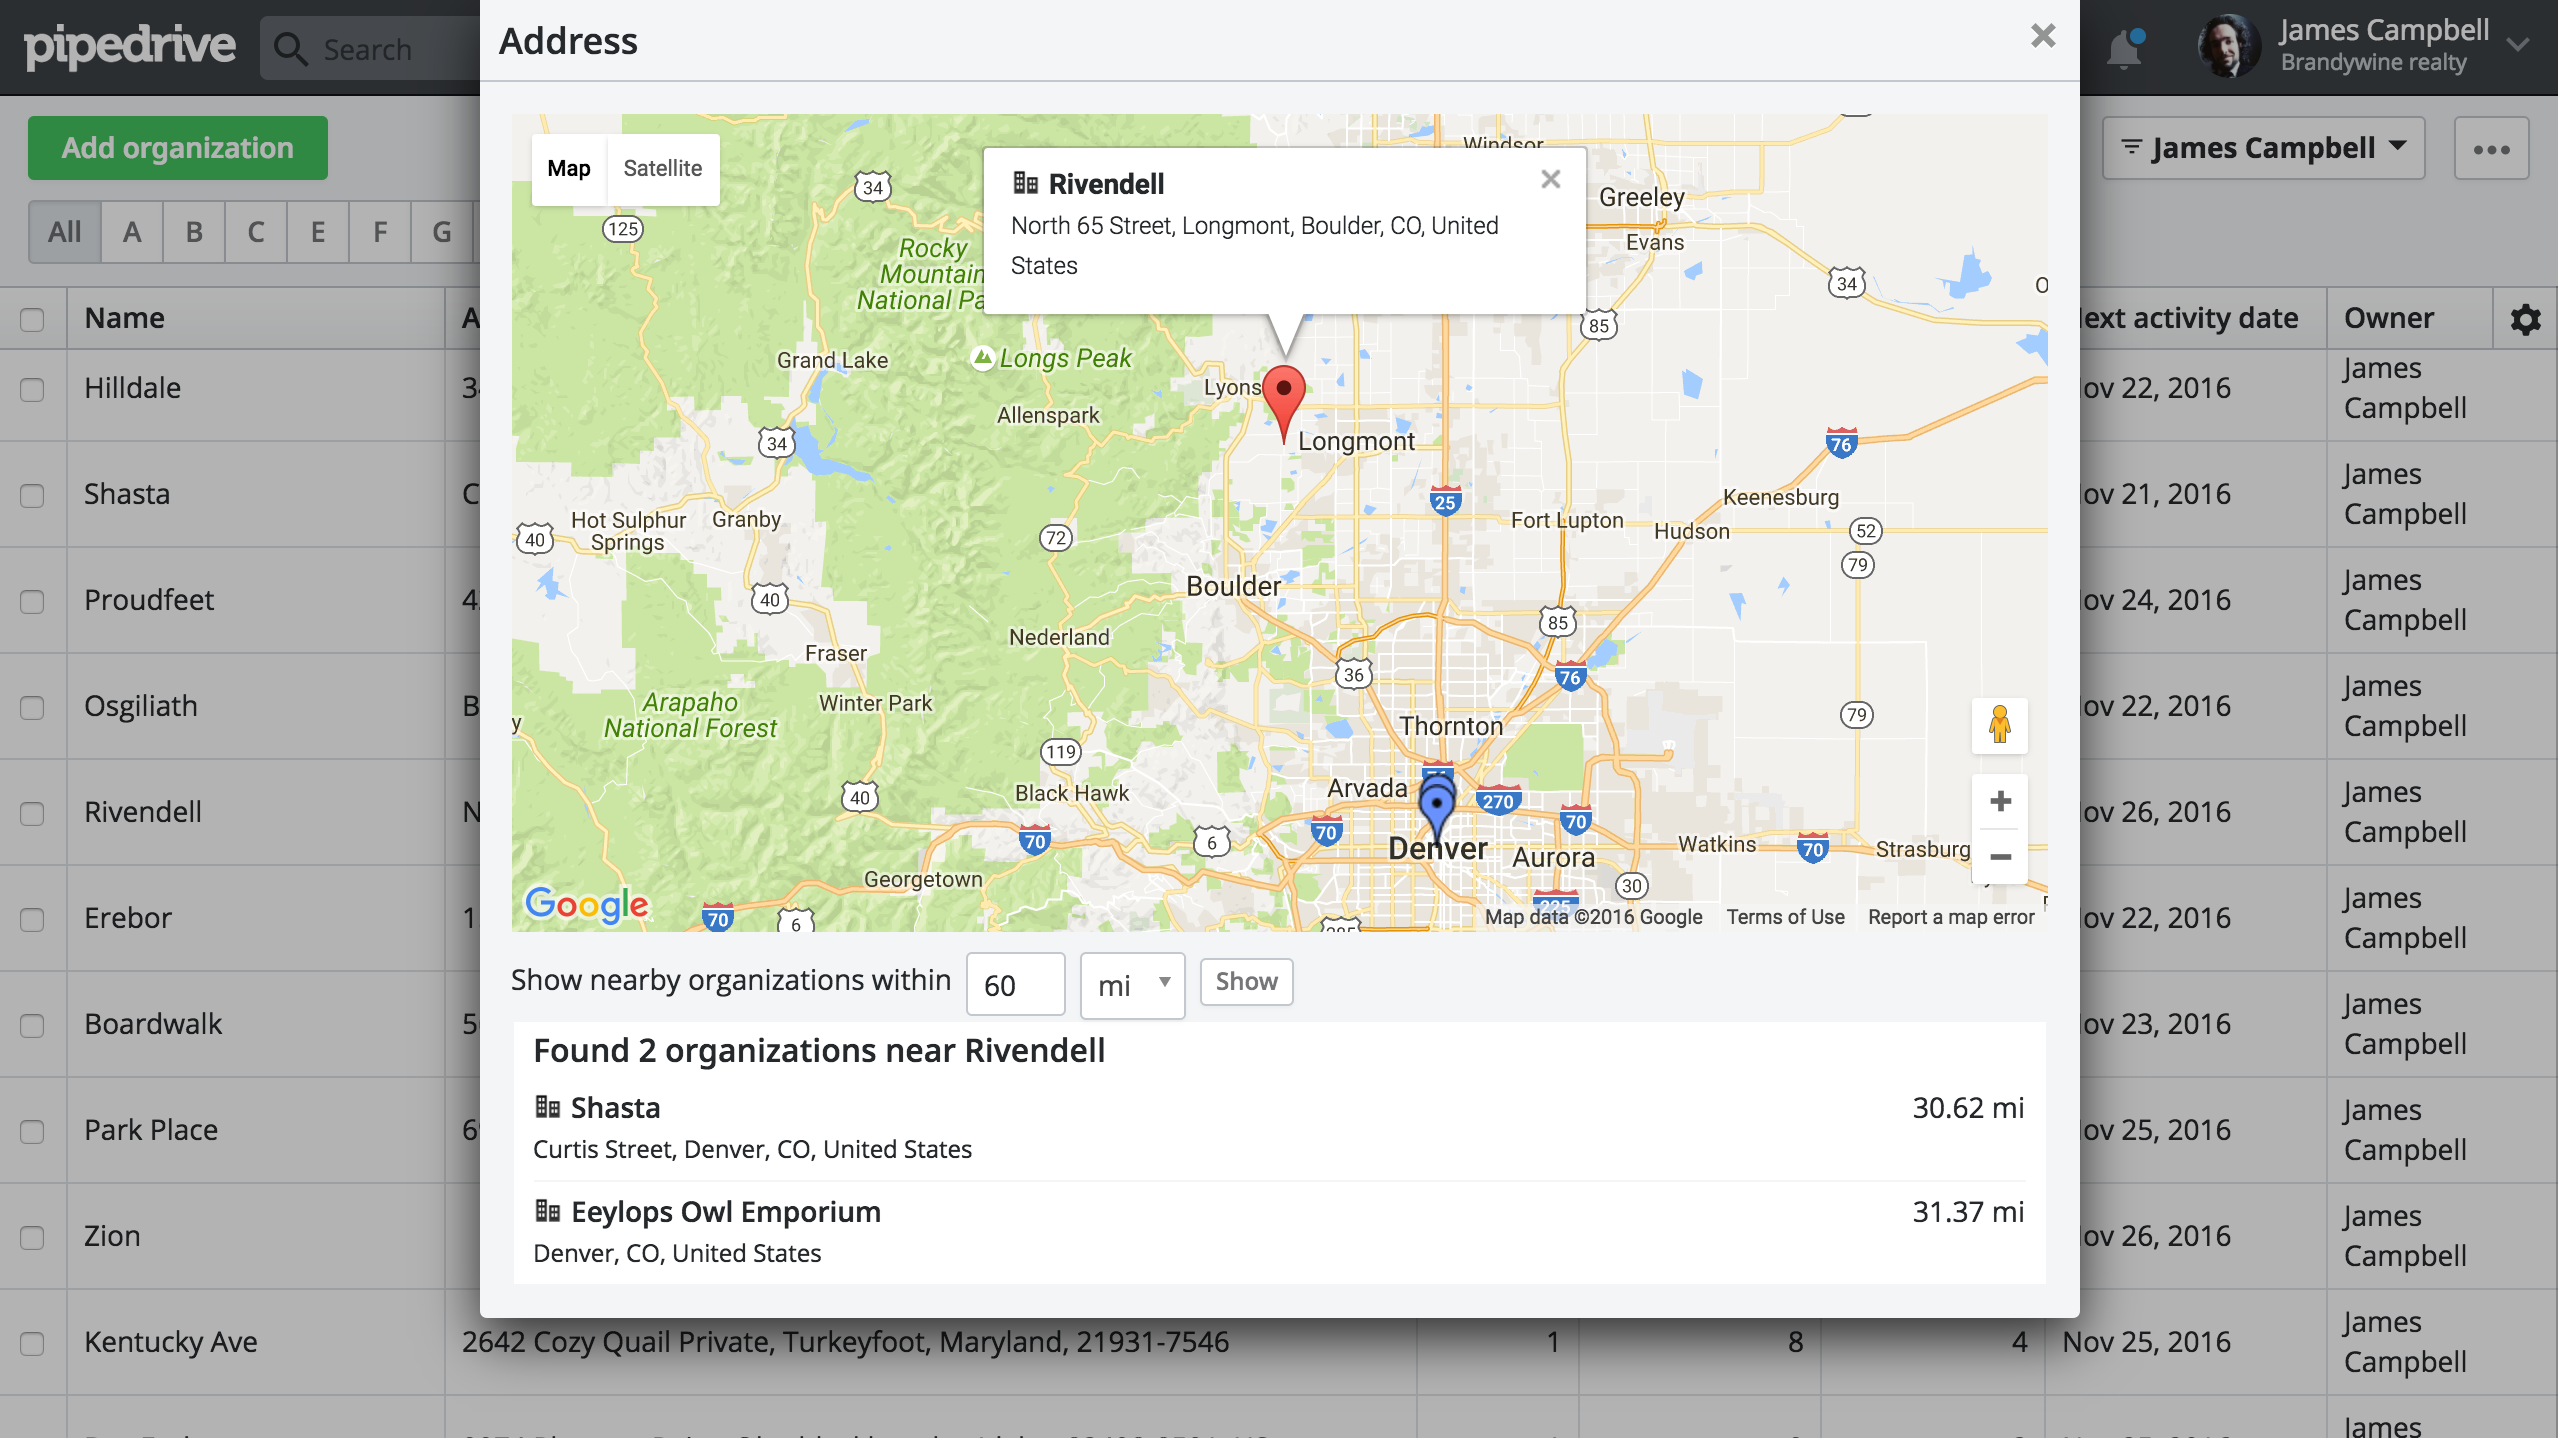 10 Pipedrive Habits Google Maps Integration